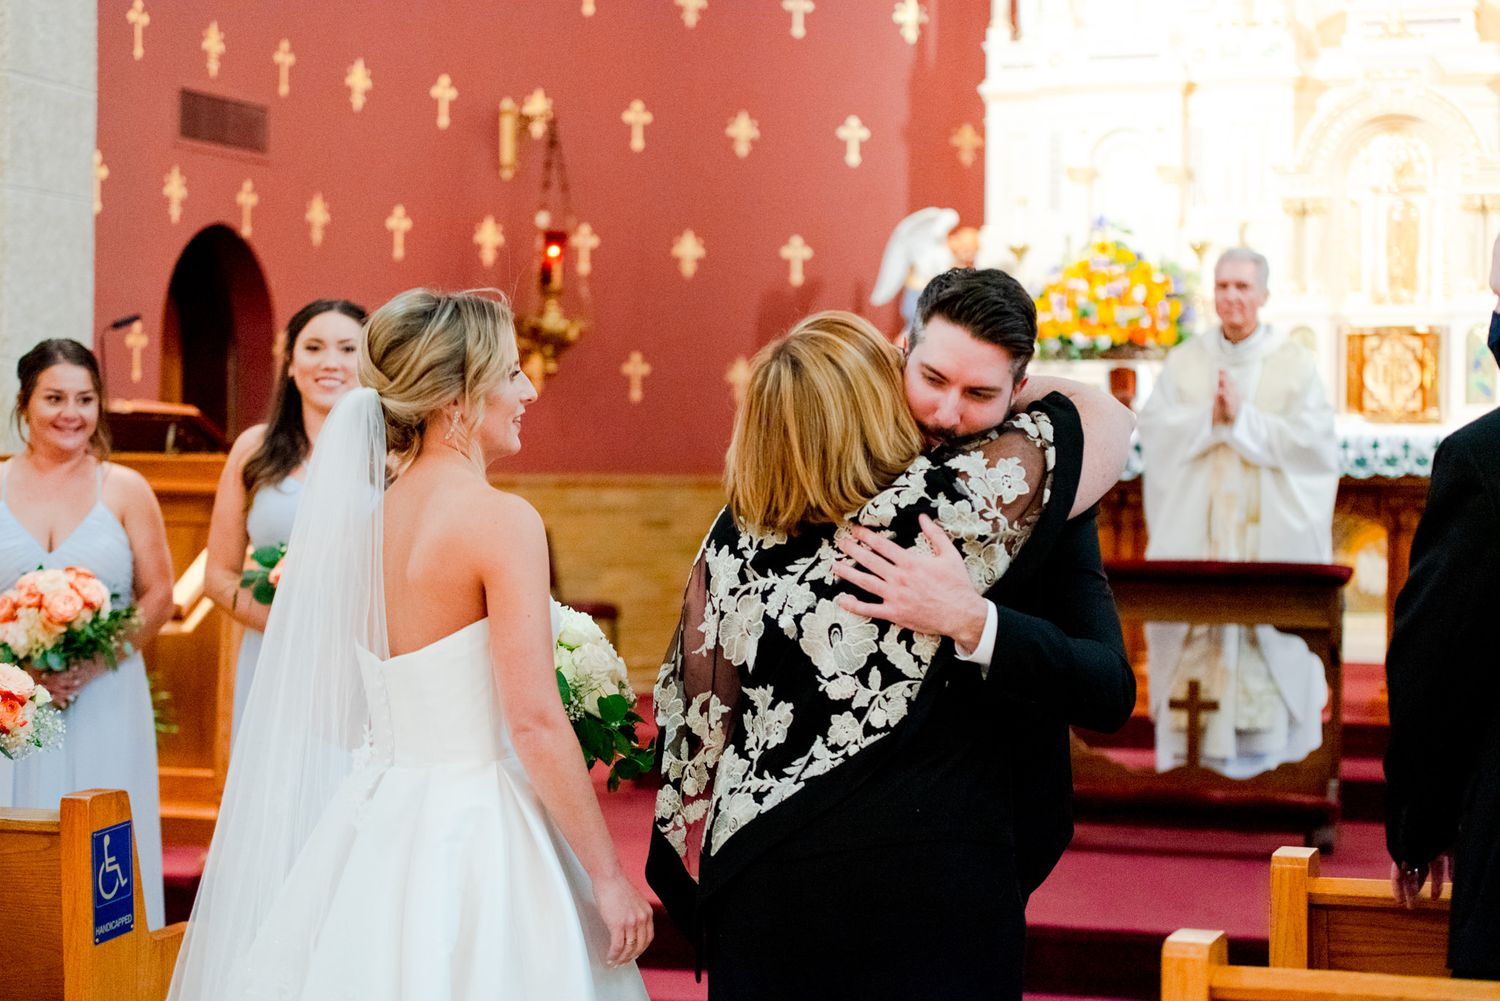 groom and mother of the bride hugging at the church altar before wedding ceremony